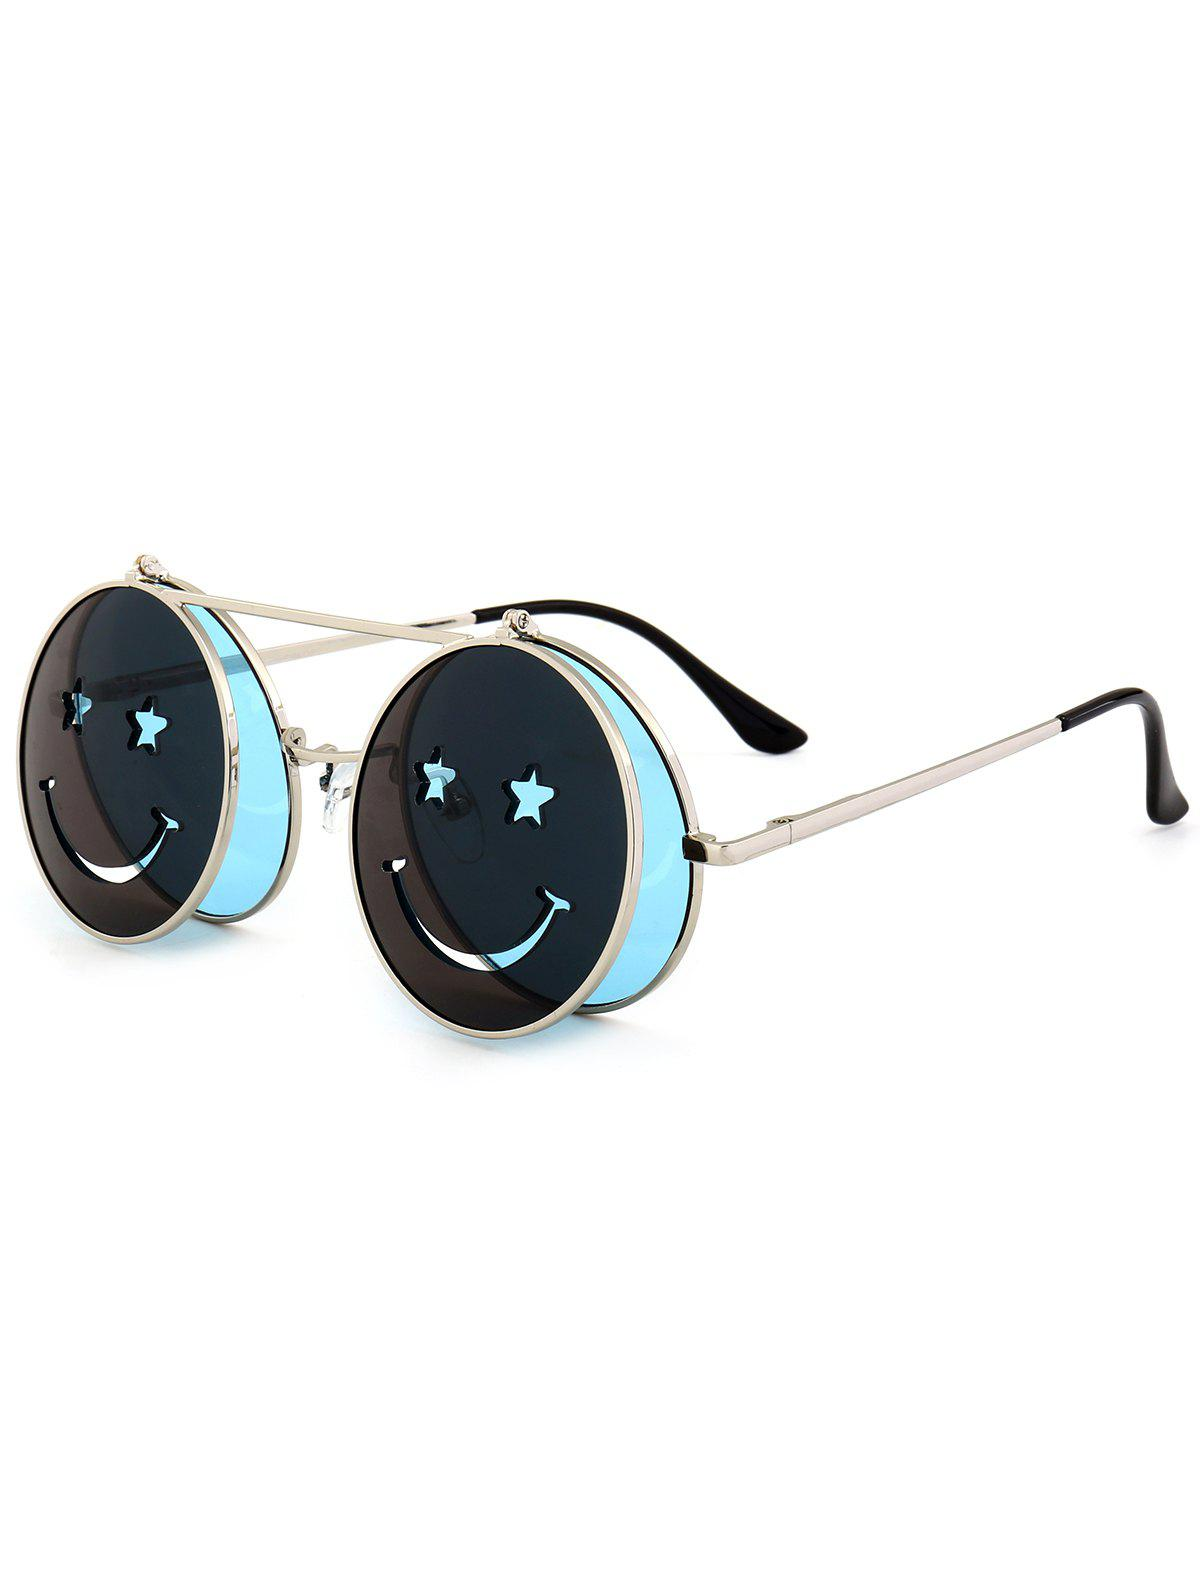 Cute Smiling Face Embellished Flip-open Circle Shaped Sunglasses - LIGHT BLUE